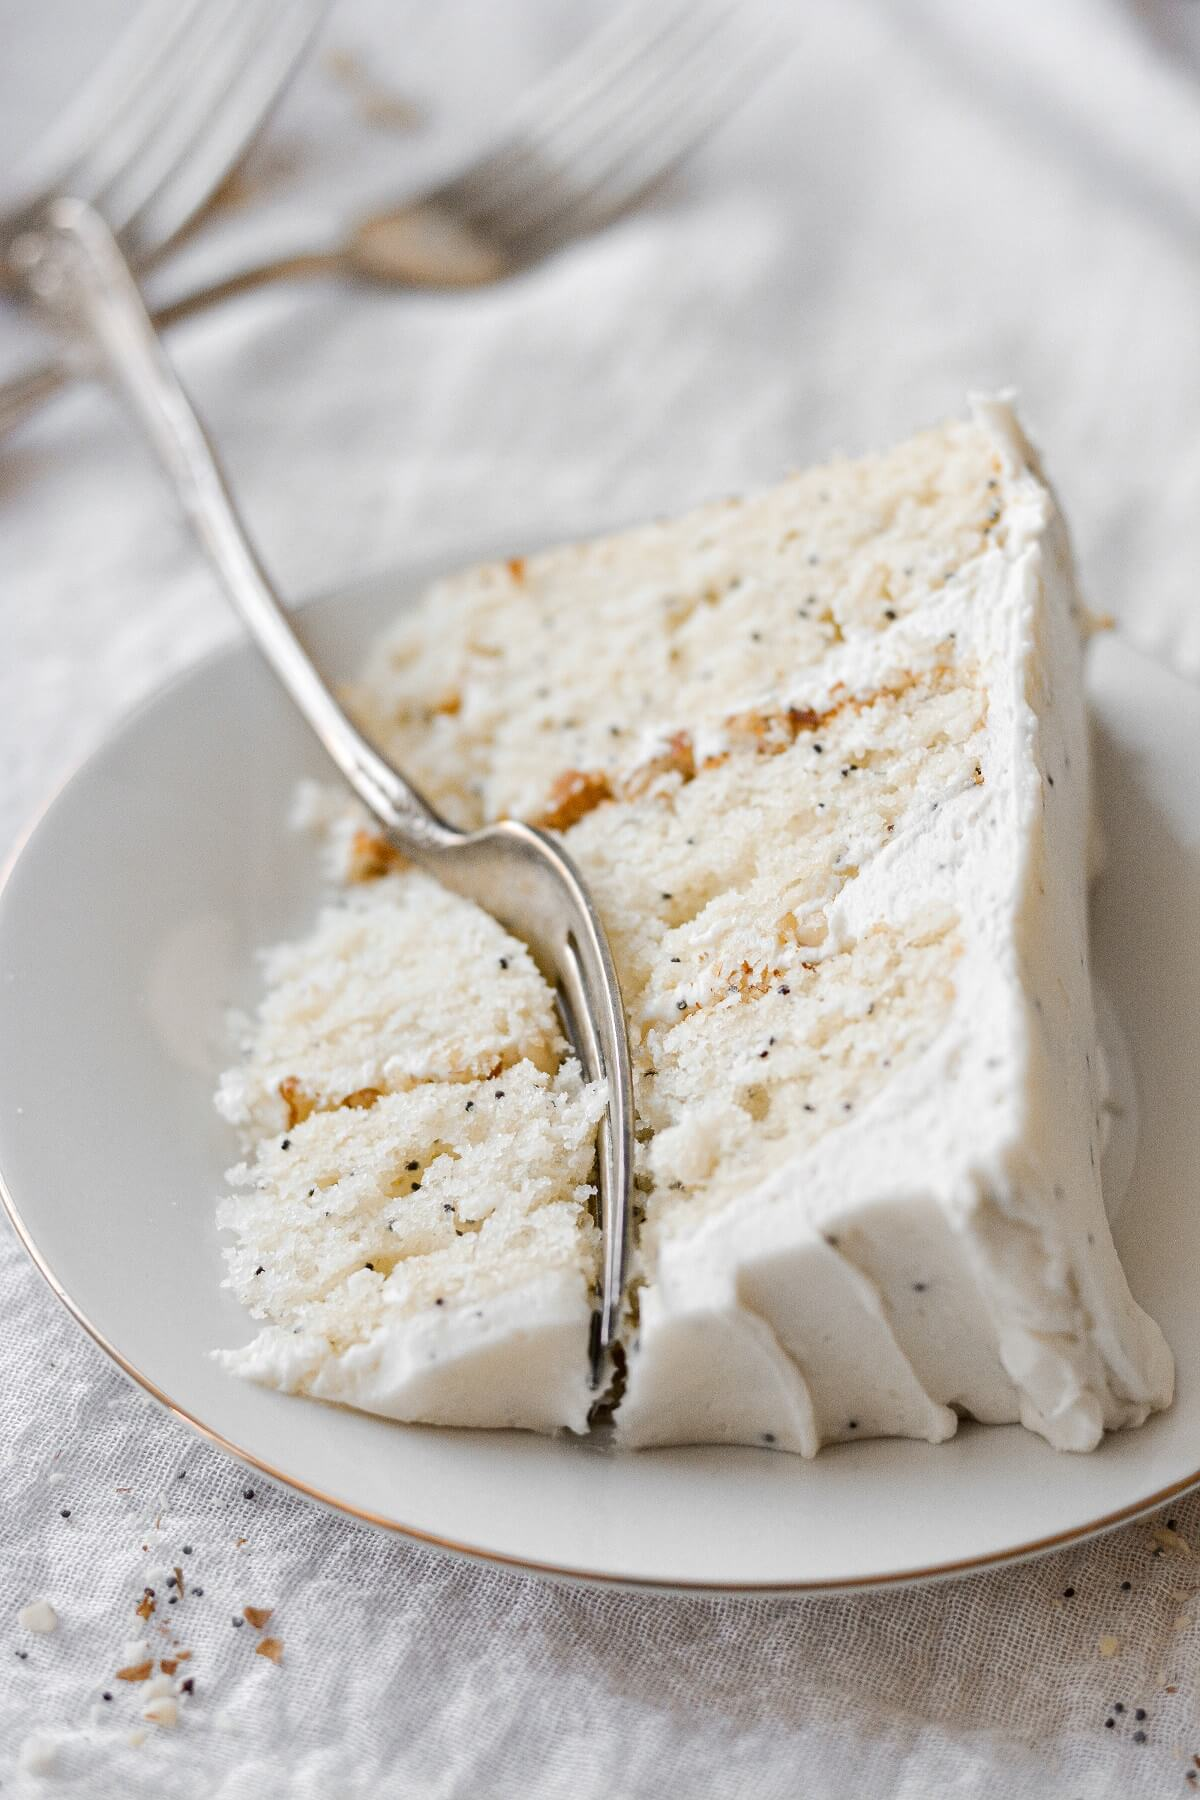 A slice of almond poppyseed cake with a bite cut.